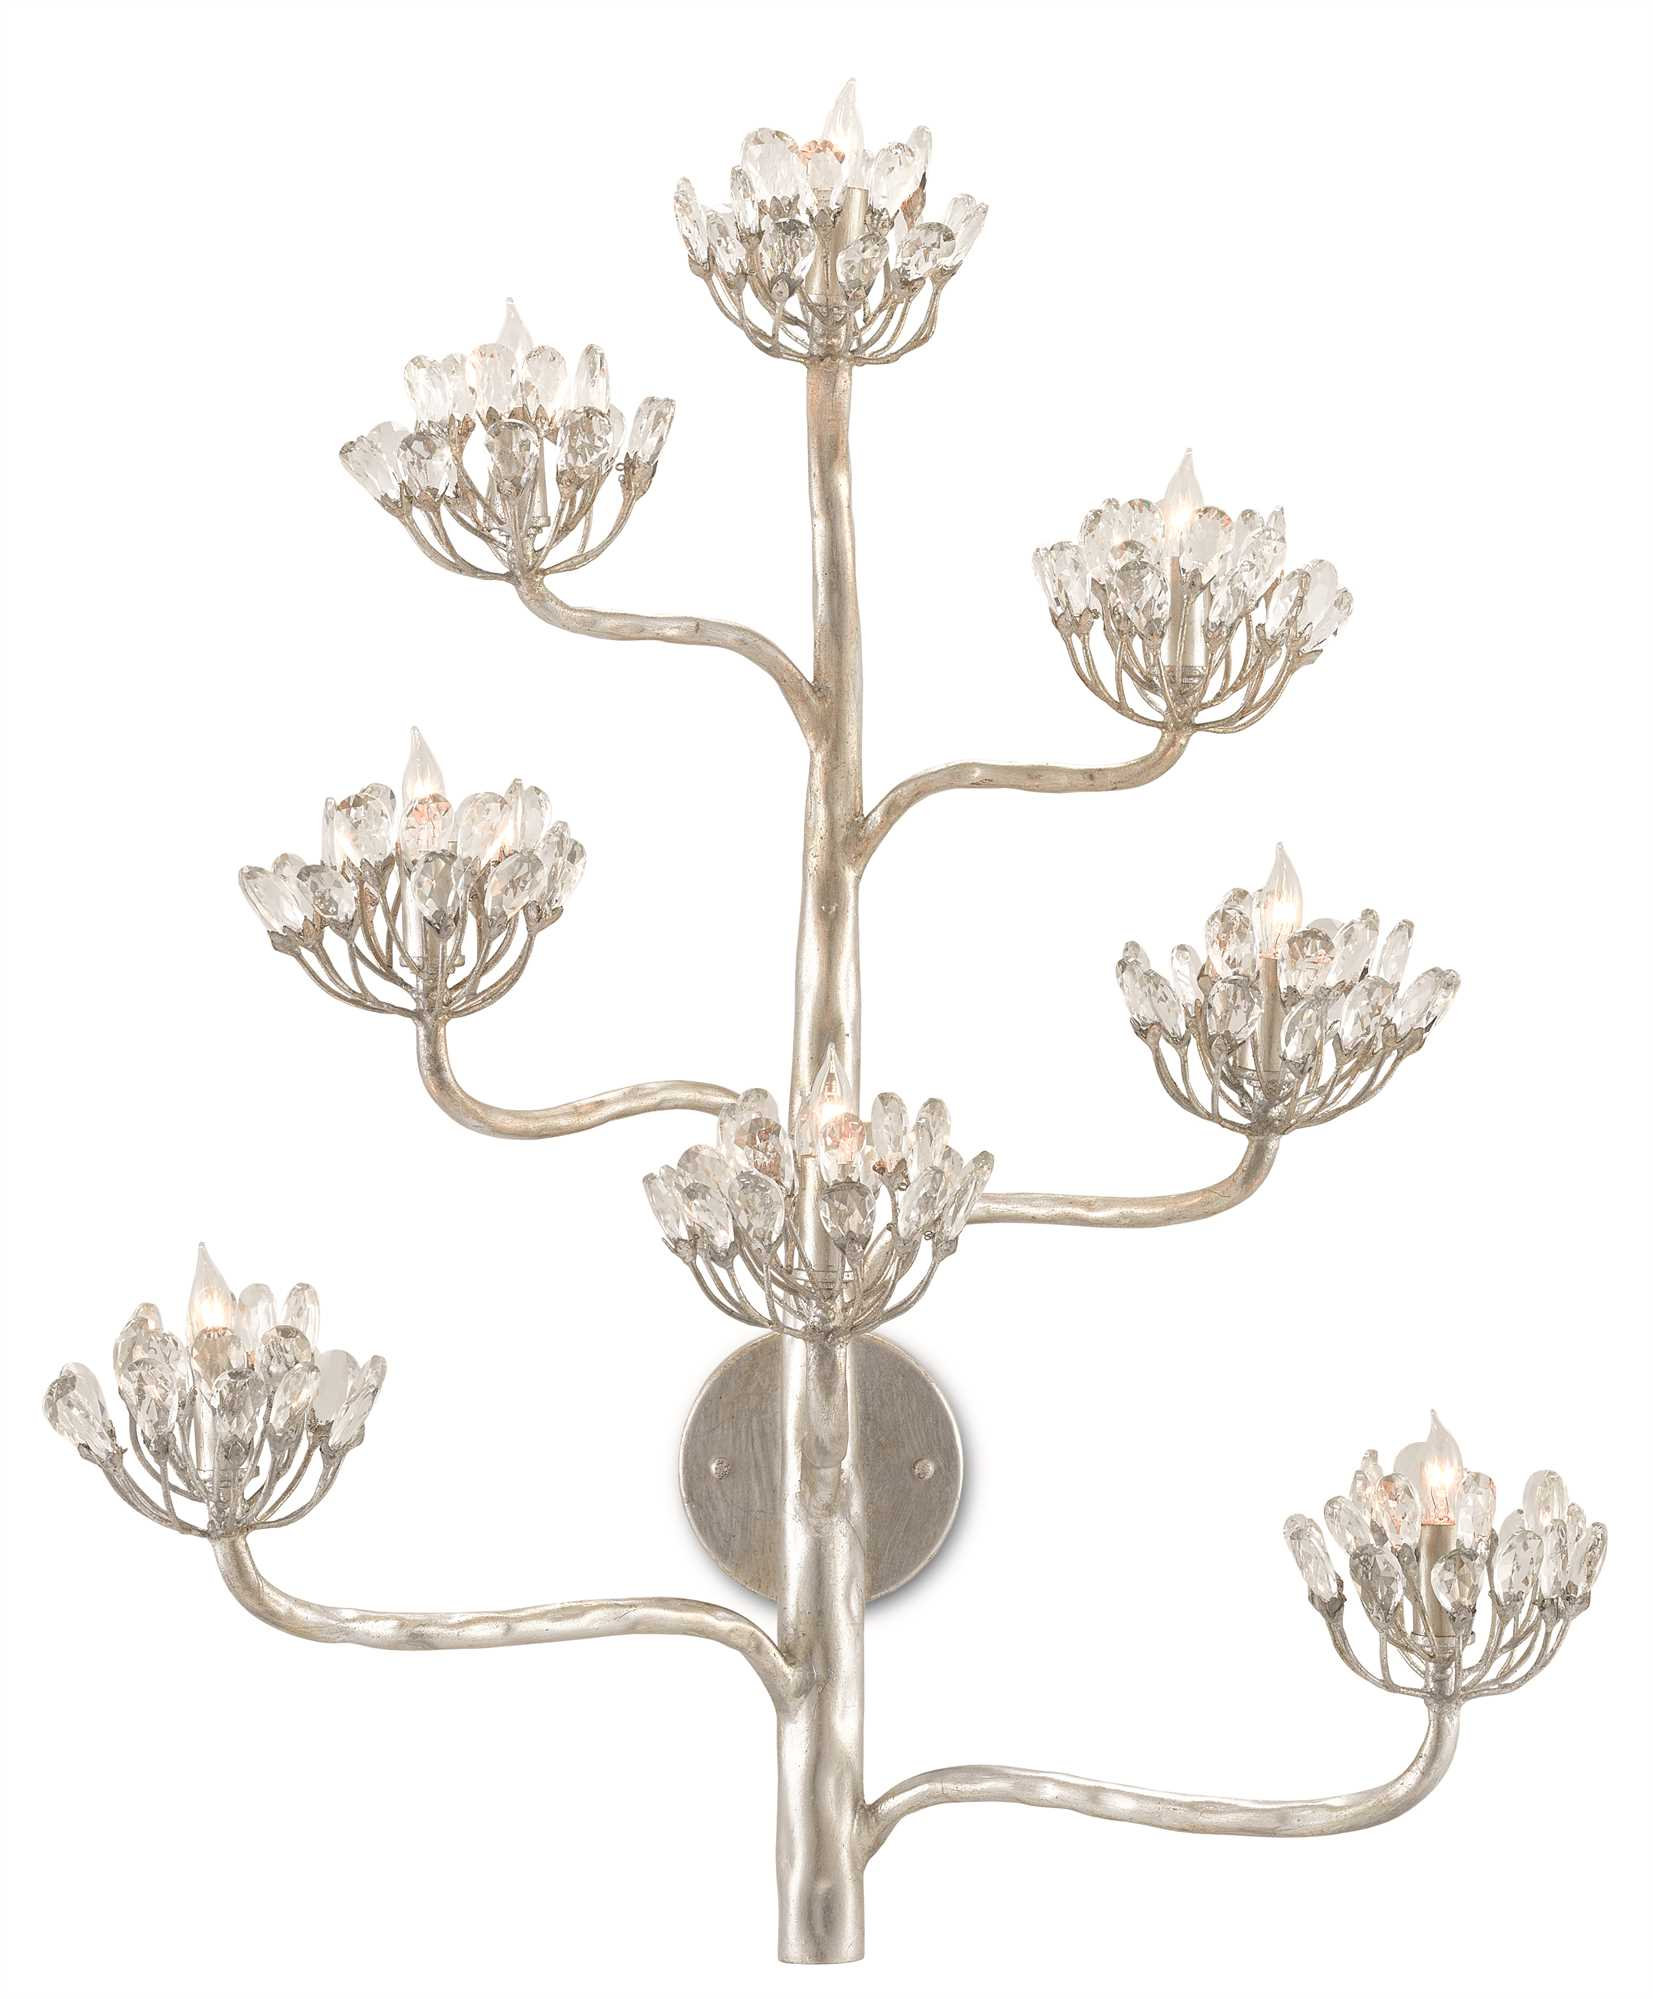 Currey and Company Agave Americana Wall Sconce 5000-0105